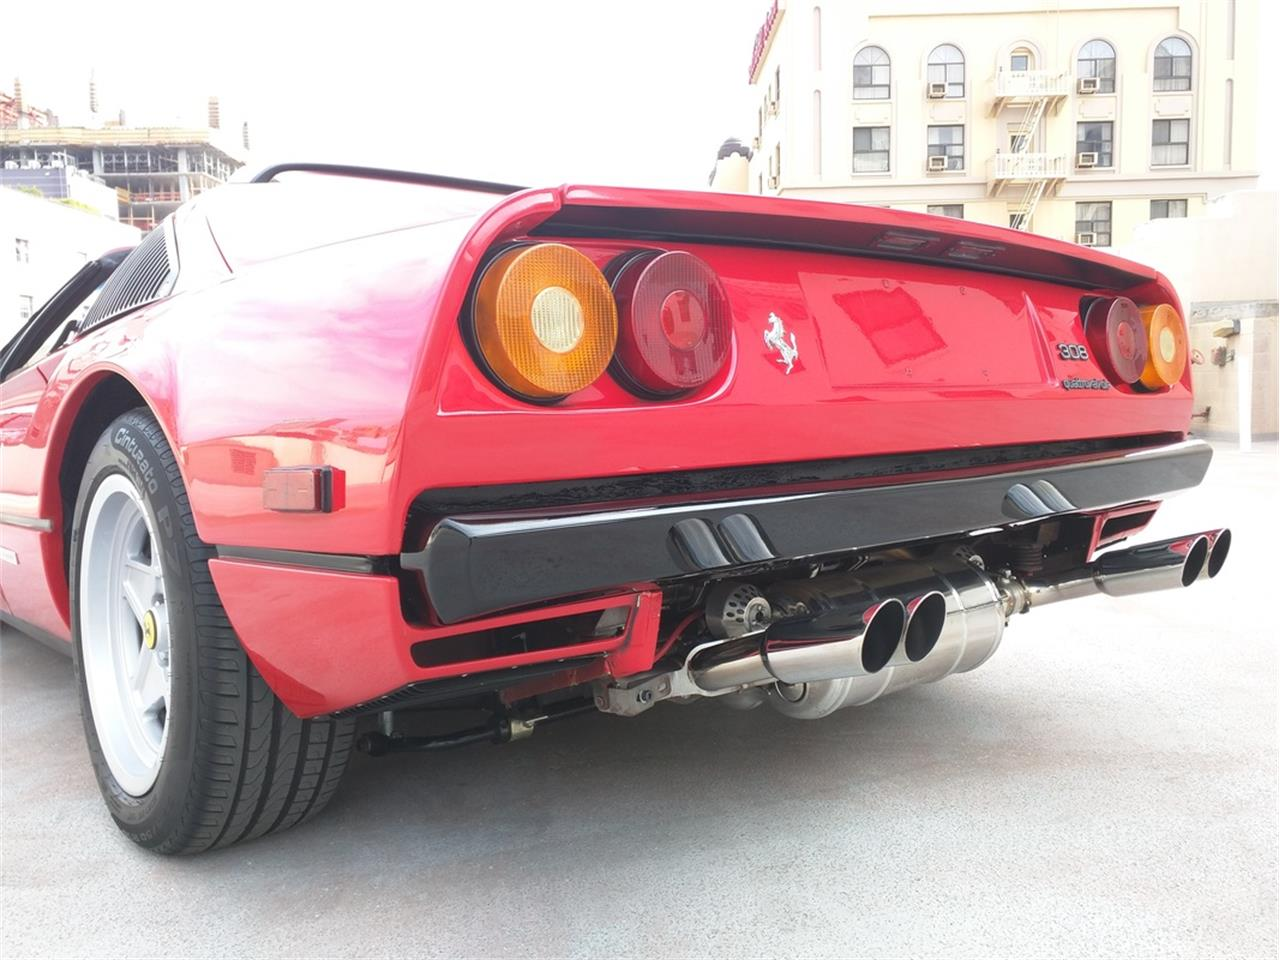 Large Picture of 1985 308 GTS - $60,000.00 Offered by a Private Seller - G99N